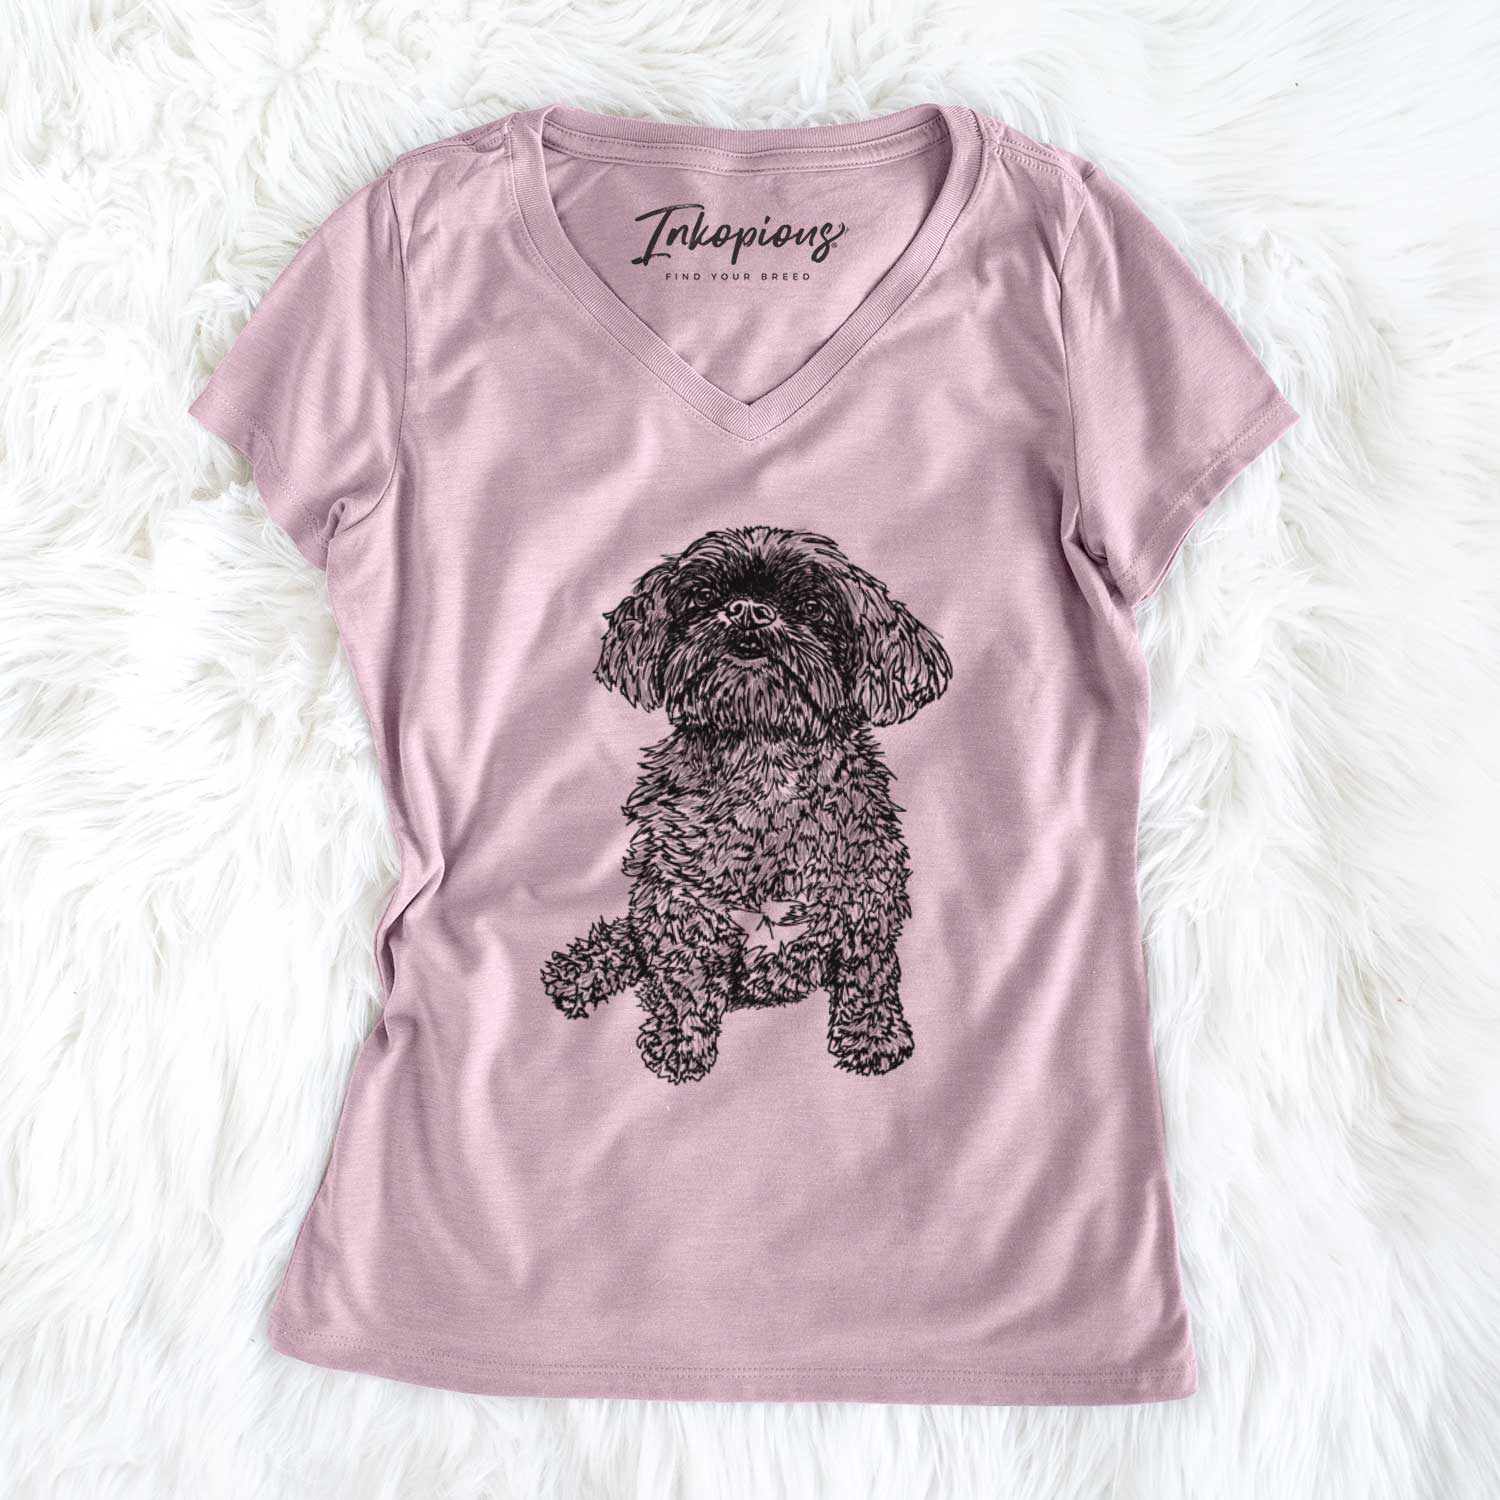 Doodled Chewie the Peekapoo - Women's Perfect V-neck Shirt